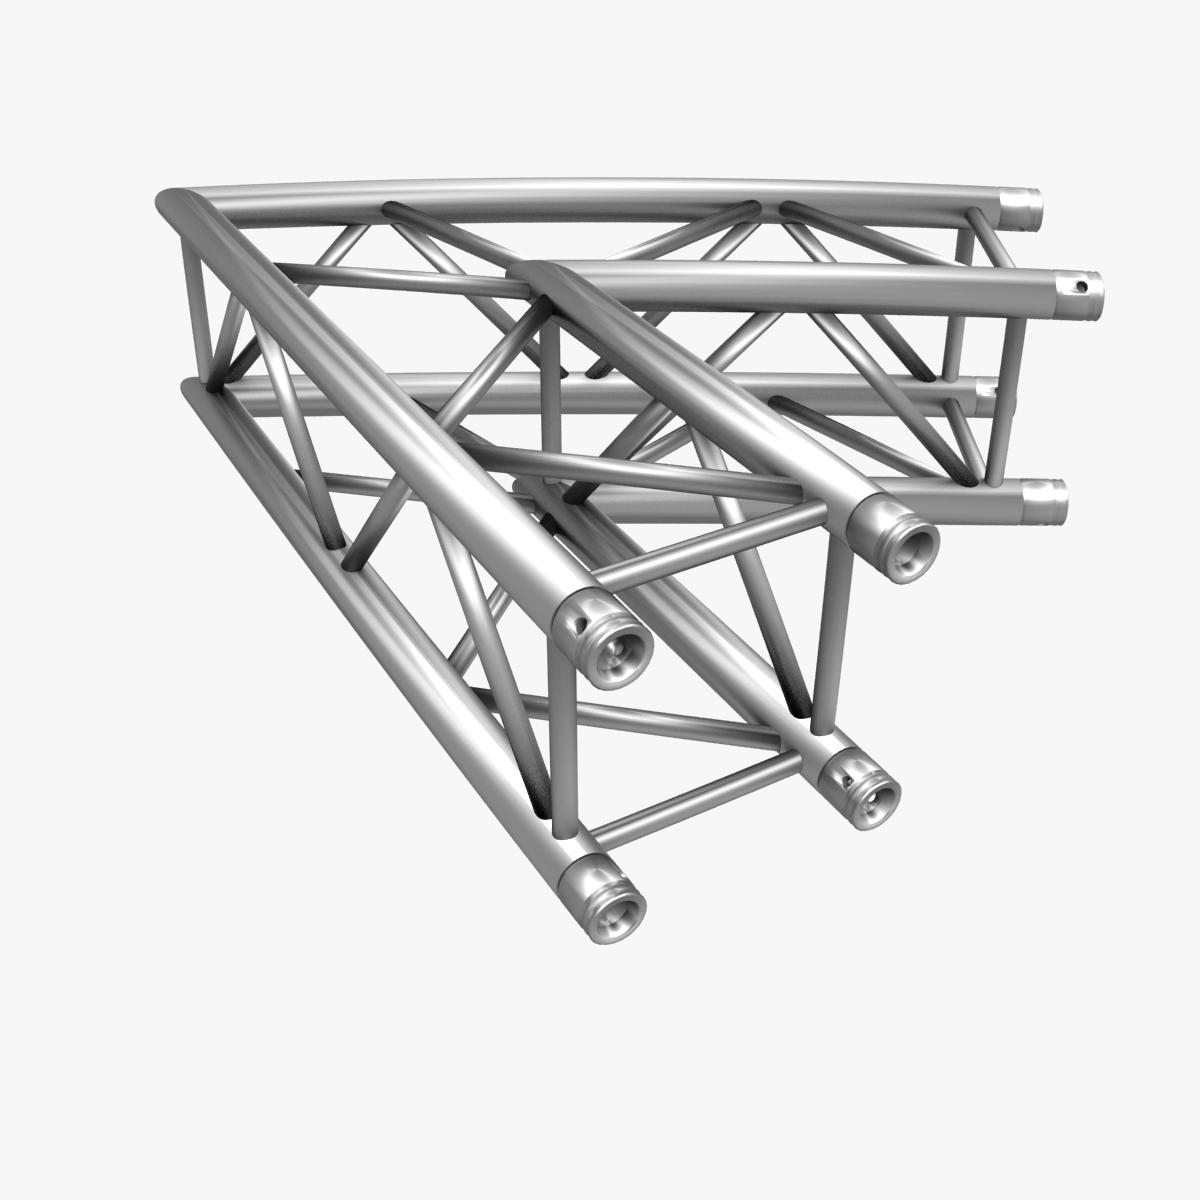 square light trusses (collection 50 modular) 3d model 3ds max dxf fbx c4d dae texture obj 216183